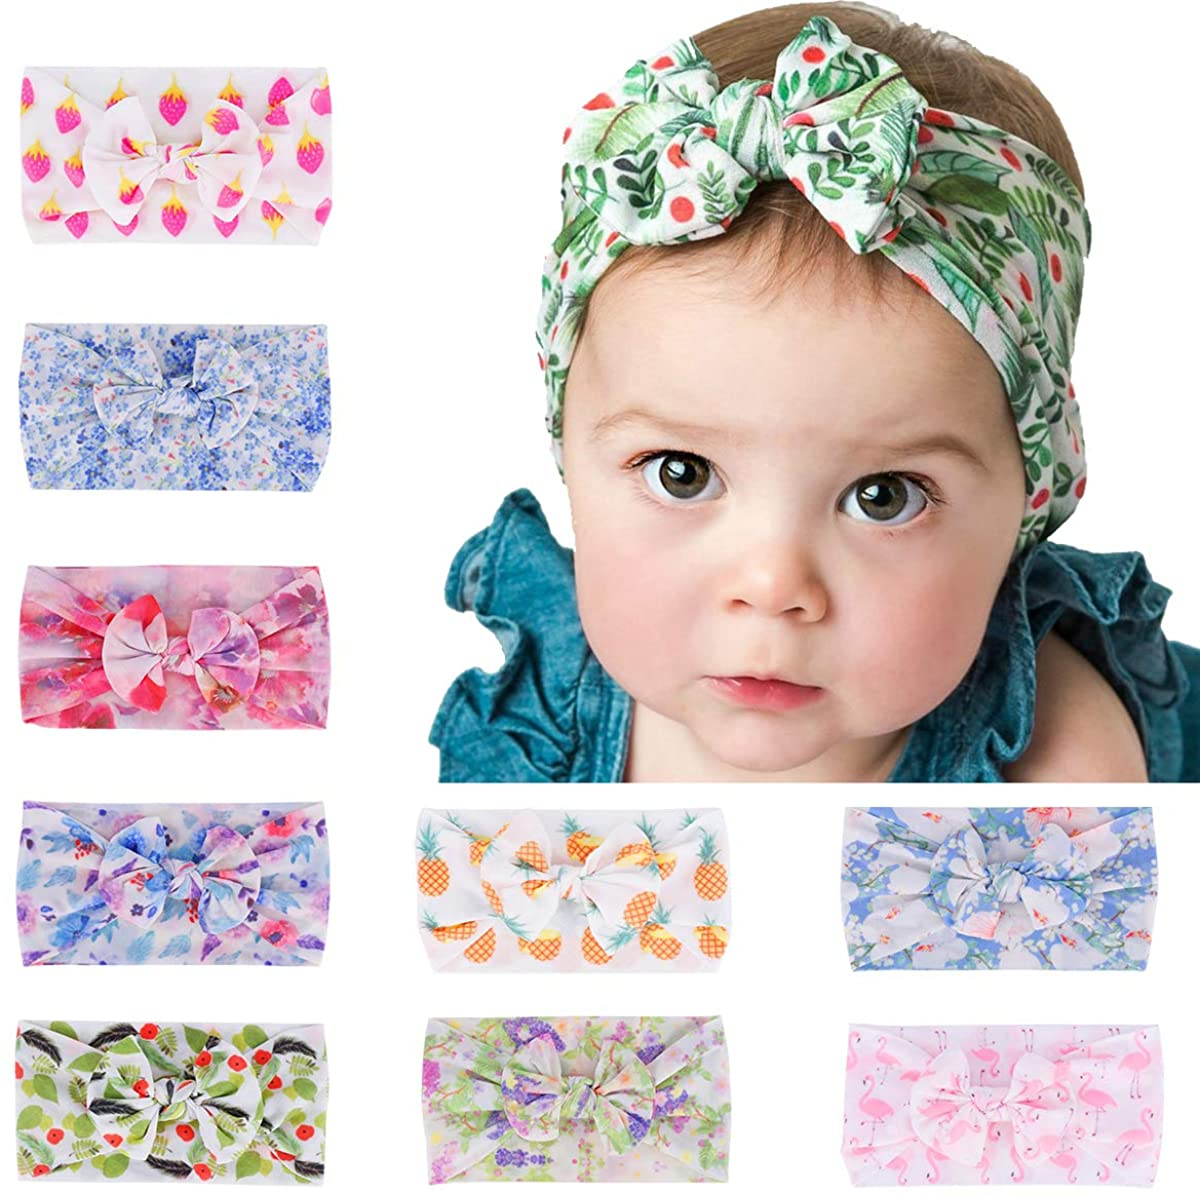 Baby Headbands Turban Knotted, Girl's Hair Accessories for Newborn,Toddler and Childrens